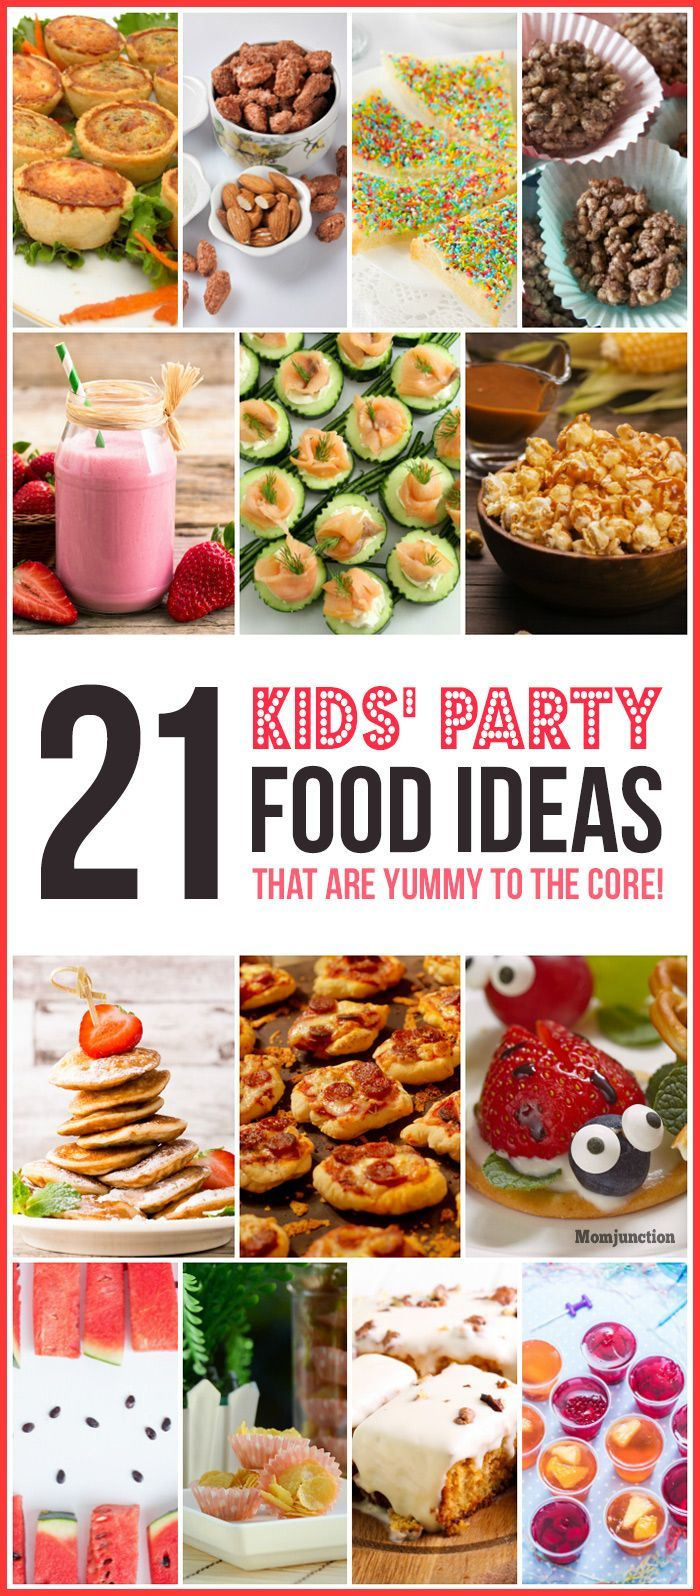 21 Kids' Party Foods That Are Easy To Make